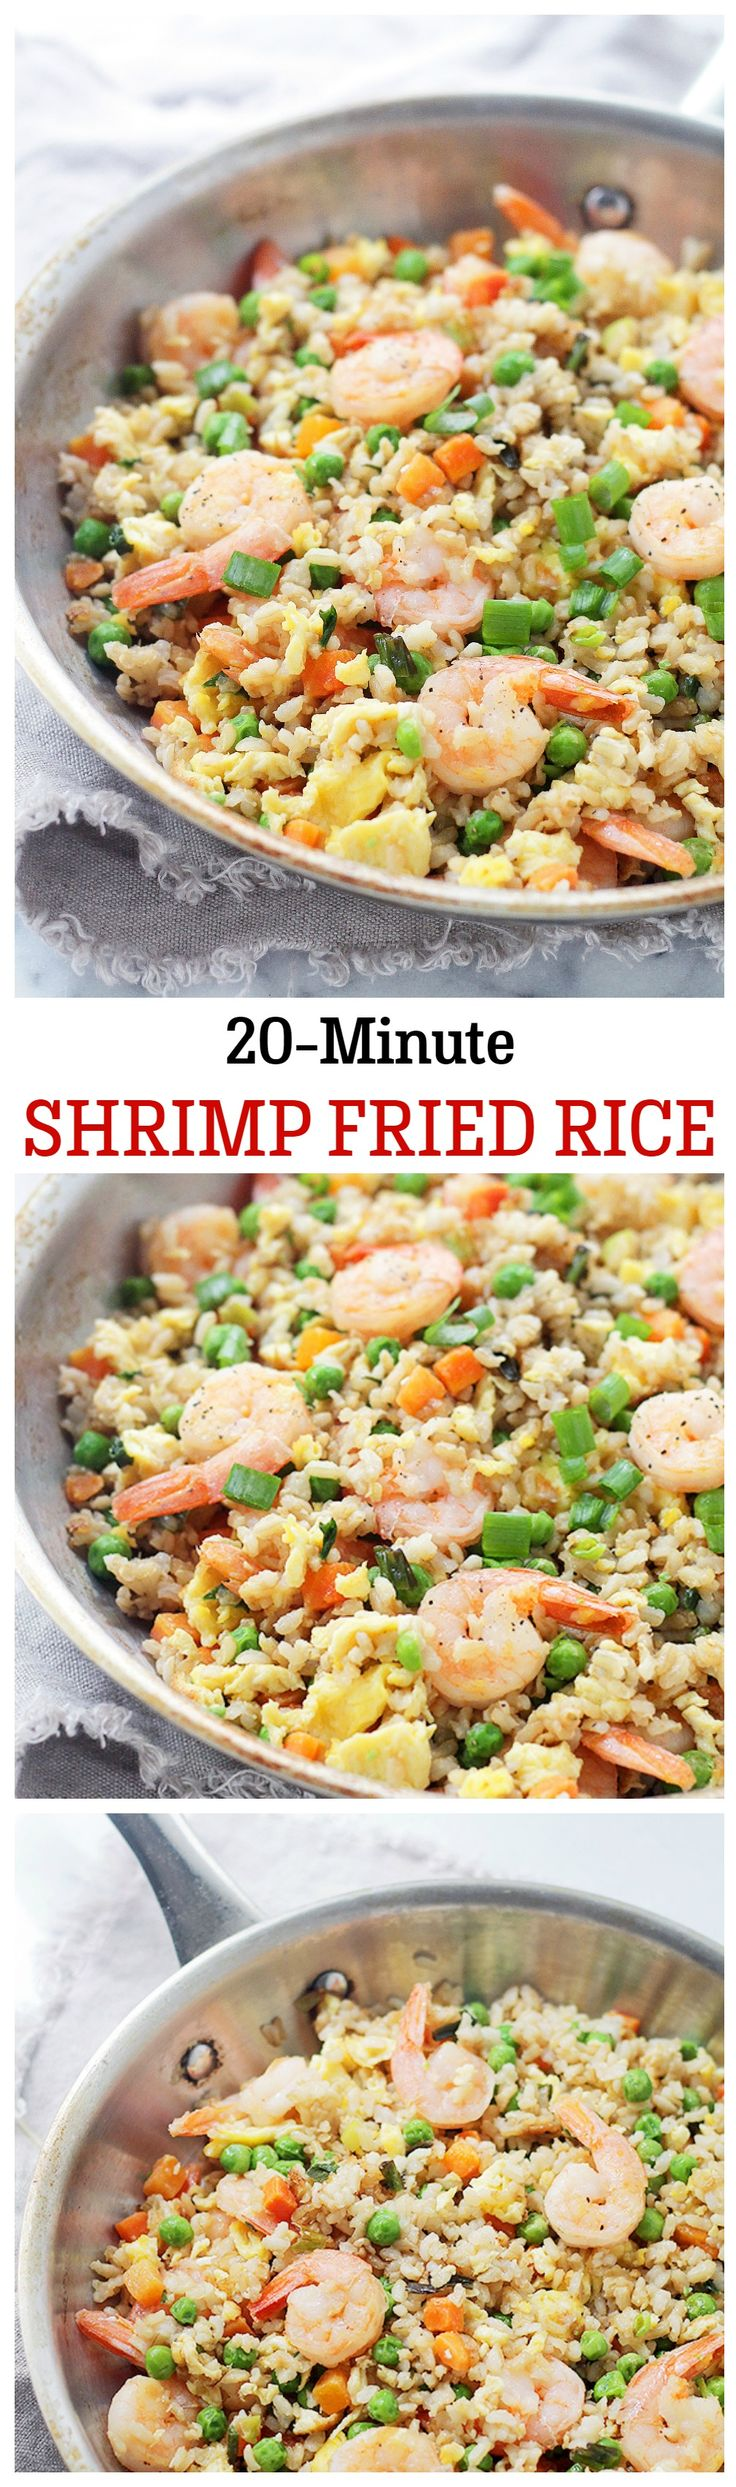 Loaded with shrimp, this Fried Rice is made with fragrant Basmati Rice and vegetables, and it only takes 20 minutes to make!